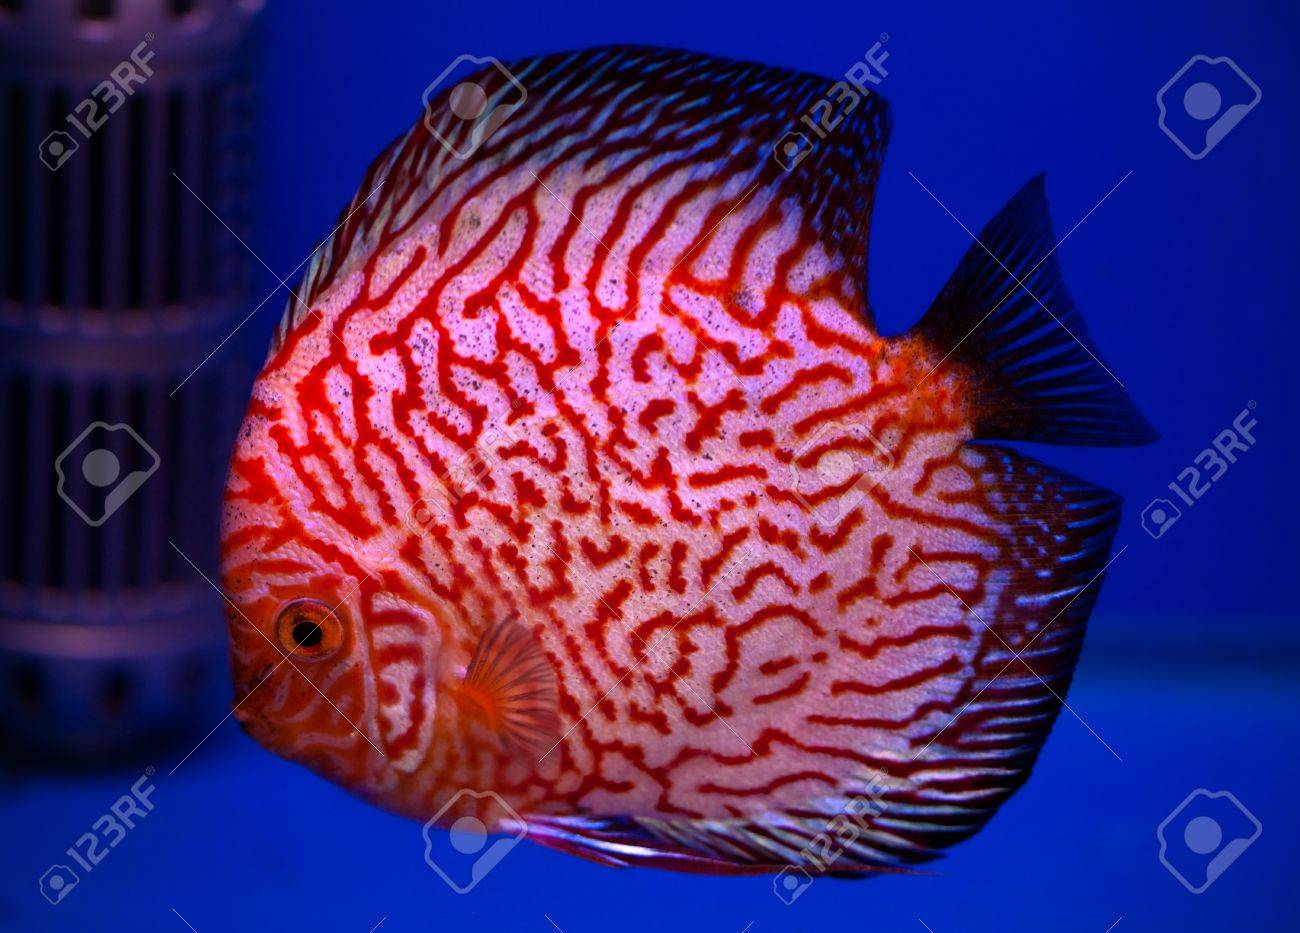 Colorful Pompadour Fish In Blue Fishtank Stock Photo, Picture And ...